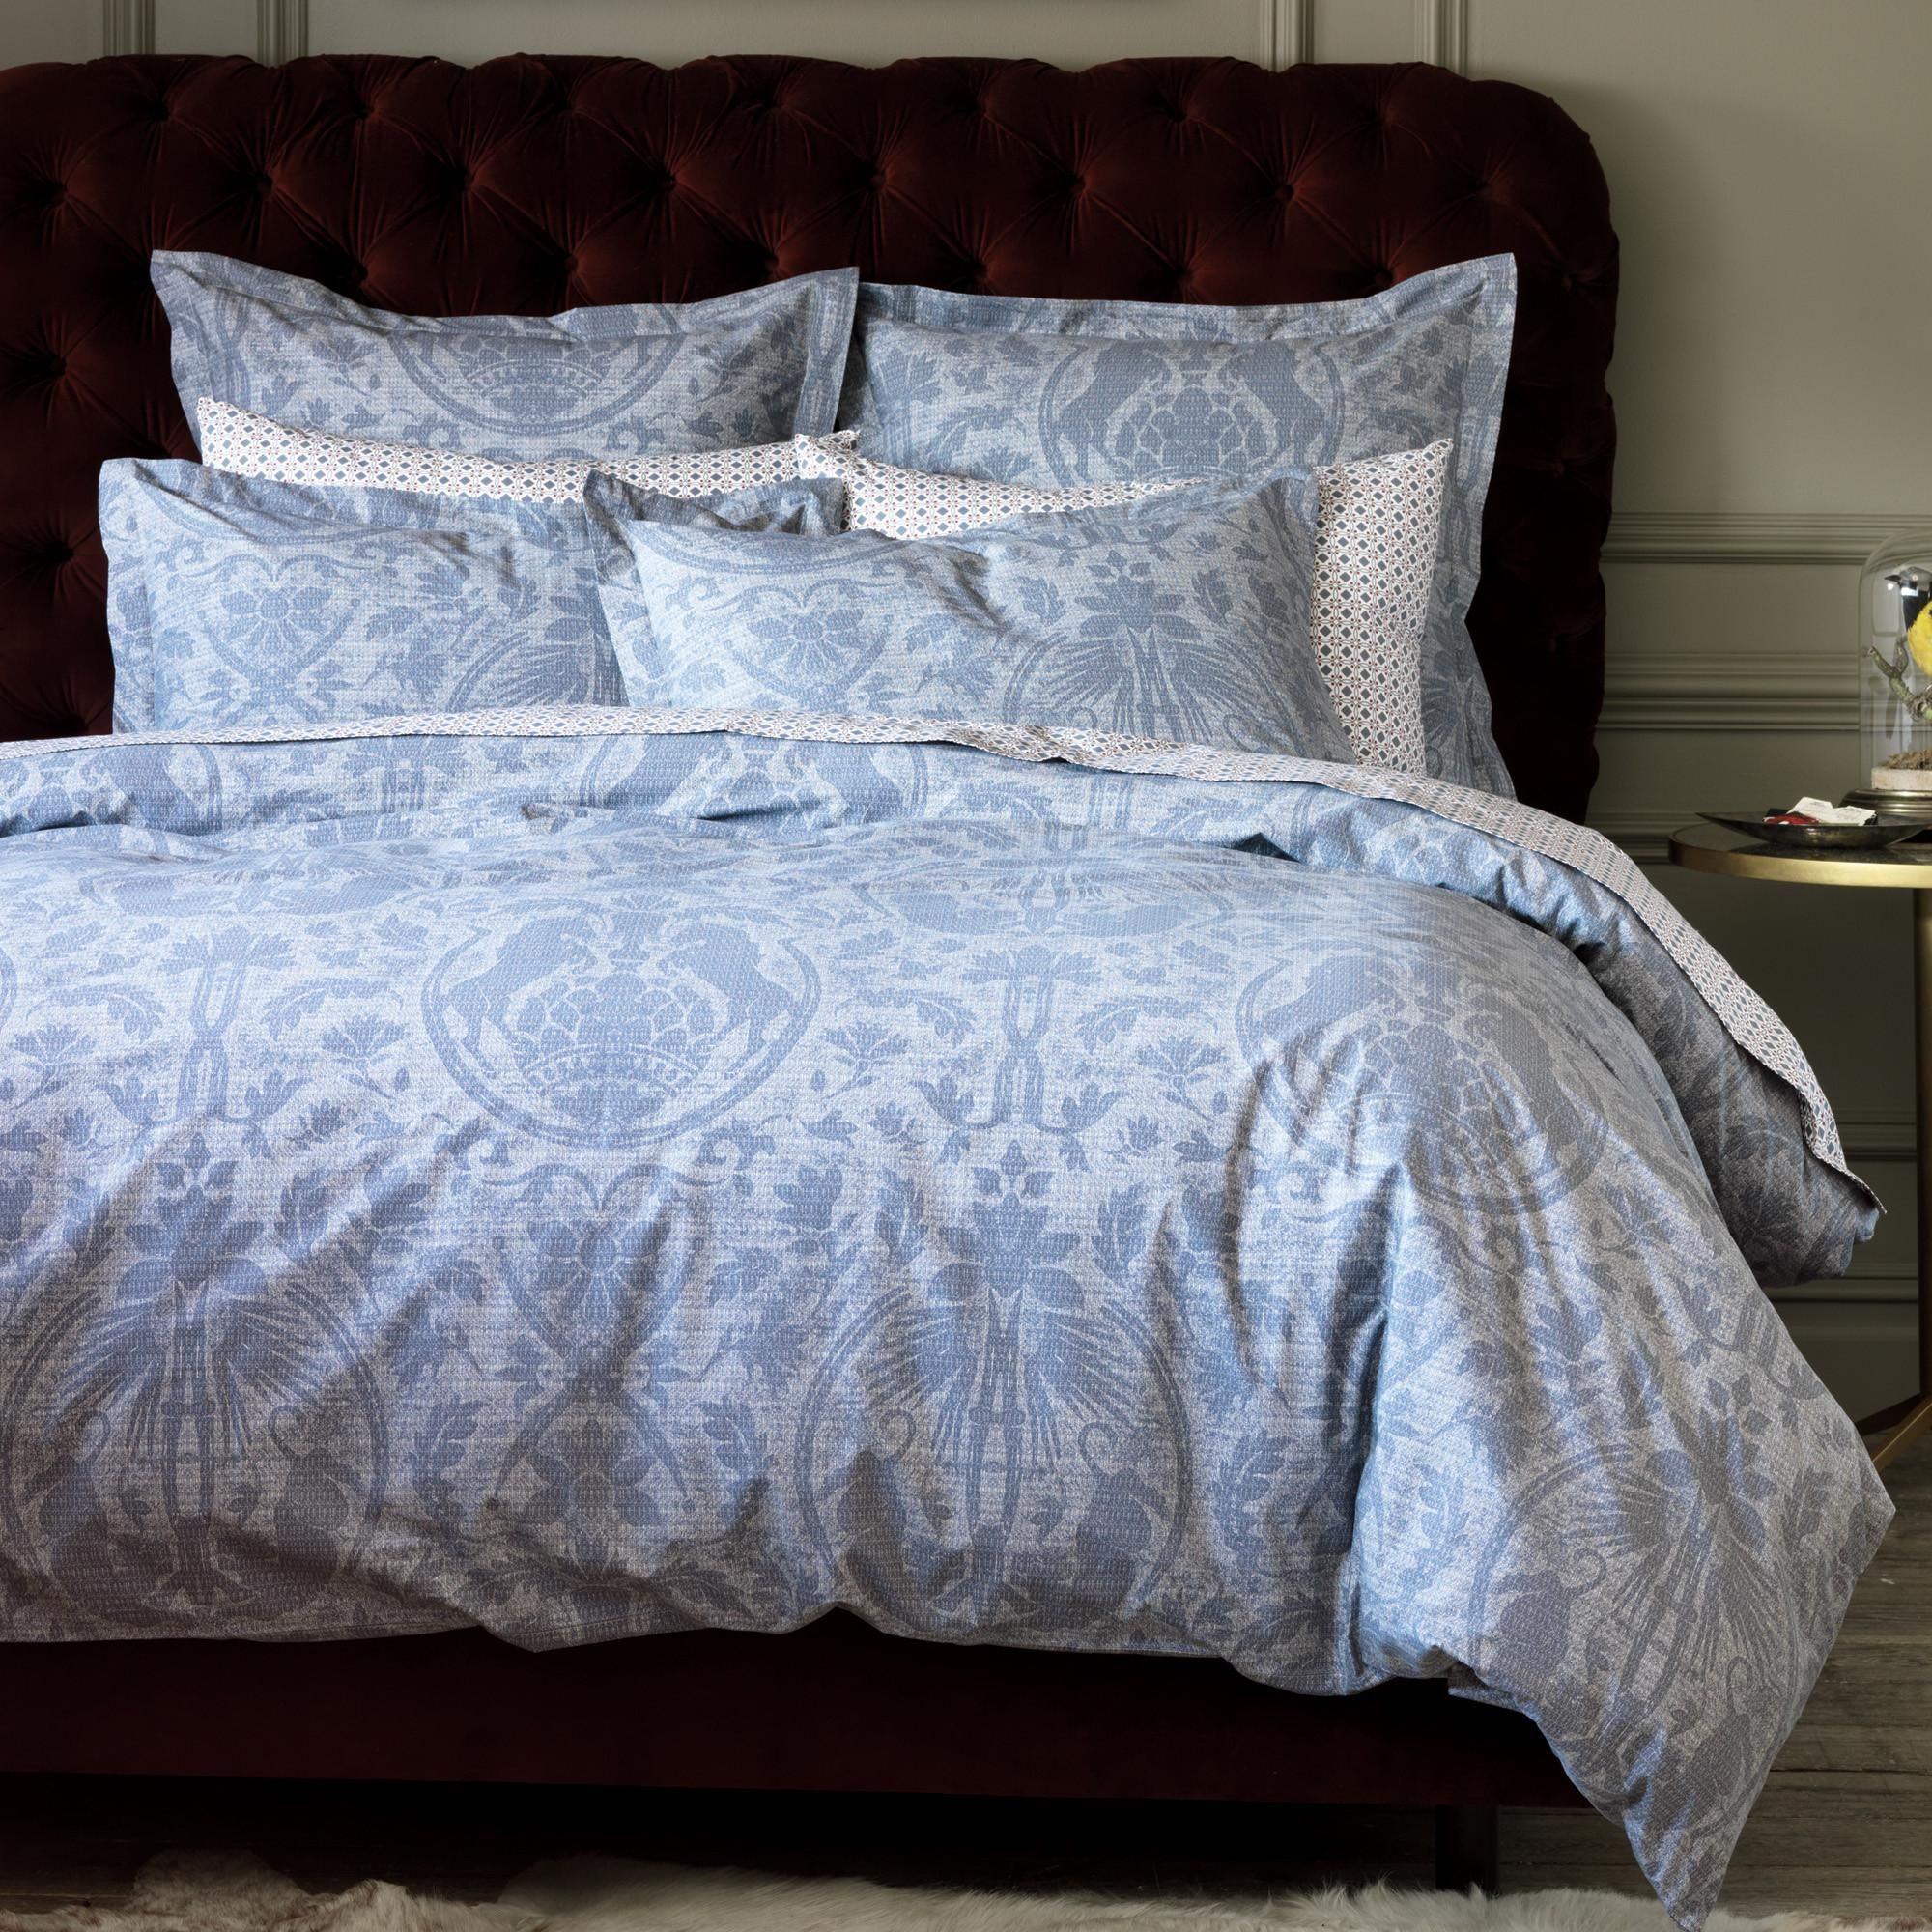 Studio Faves: Royal Blues. Chateau Duvet Cover | Luxury is in the details of this timeless-meets-modern duvet. Drawn to the intricate details of traditional damask and beautiful patina of vintage wallpaper, our designers discretely layered floral, decorative and animal elements for a truly unique design. The rich flint ground and faint pearl print create a textured, antique feel that only adds to the regal feel of our Chateau duvet.